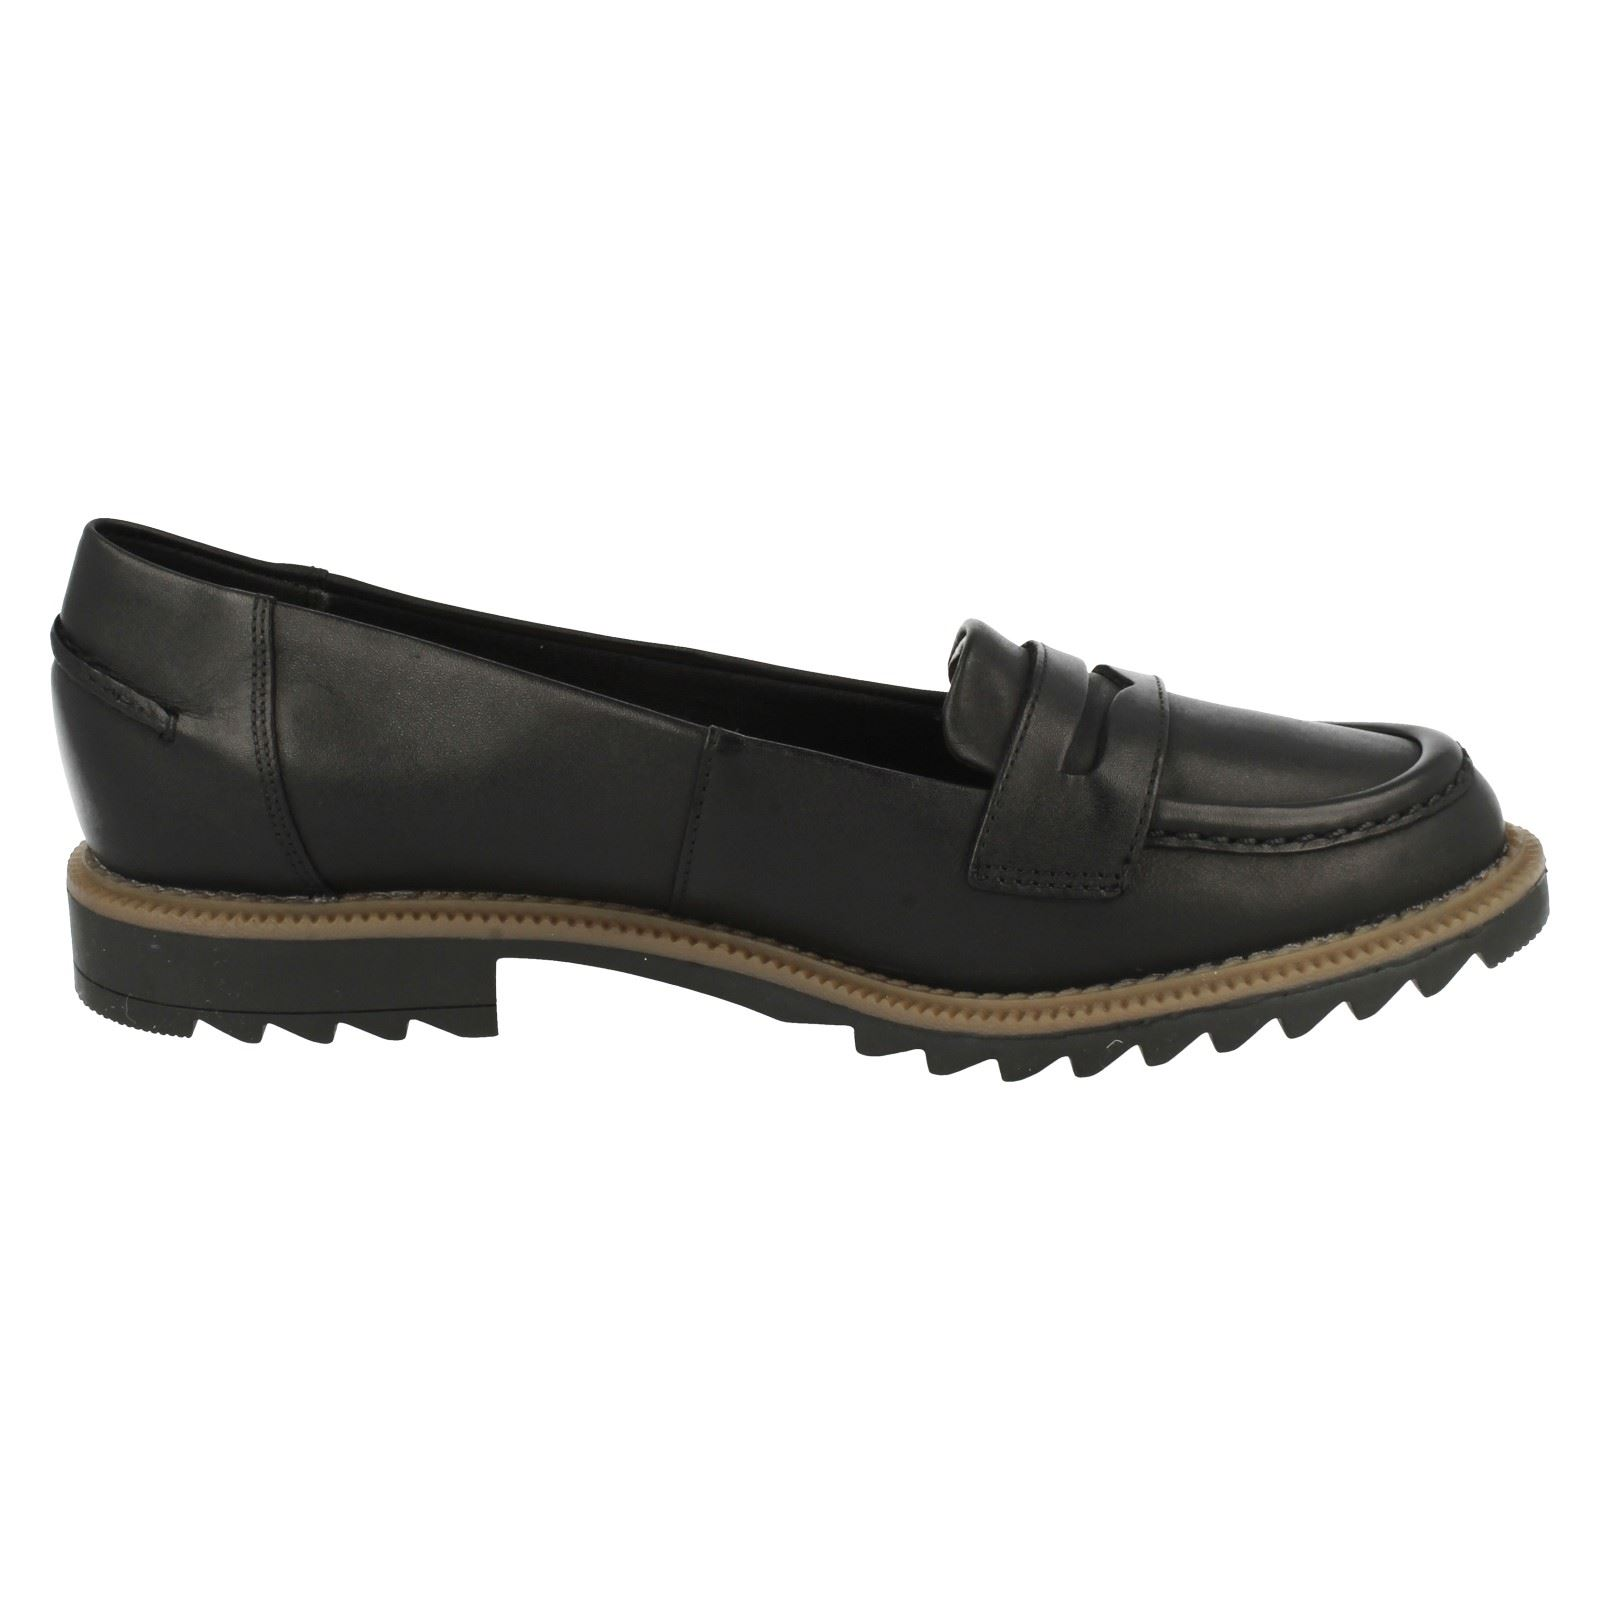 Ladies Clarks Smart Slip On Soft Leather Loafers Griffin Milly